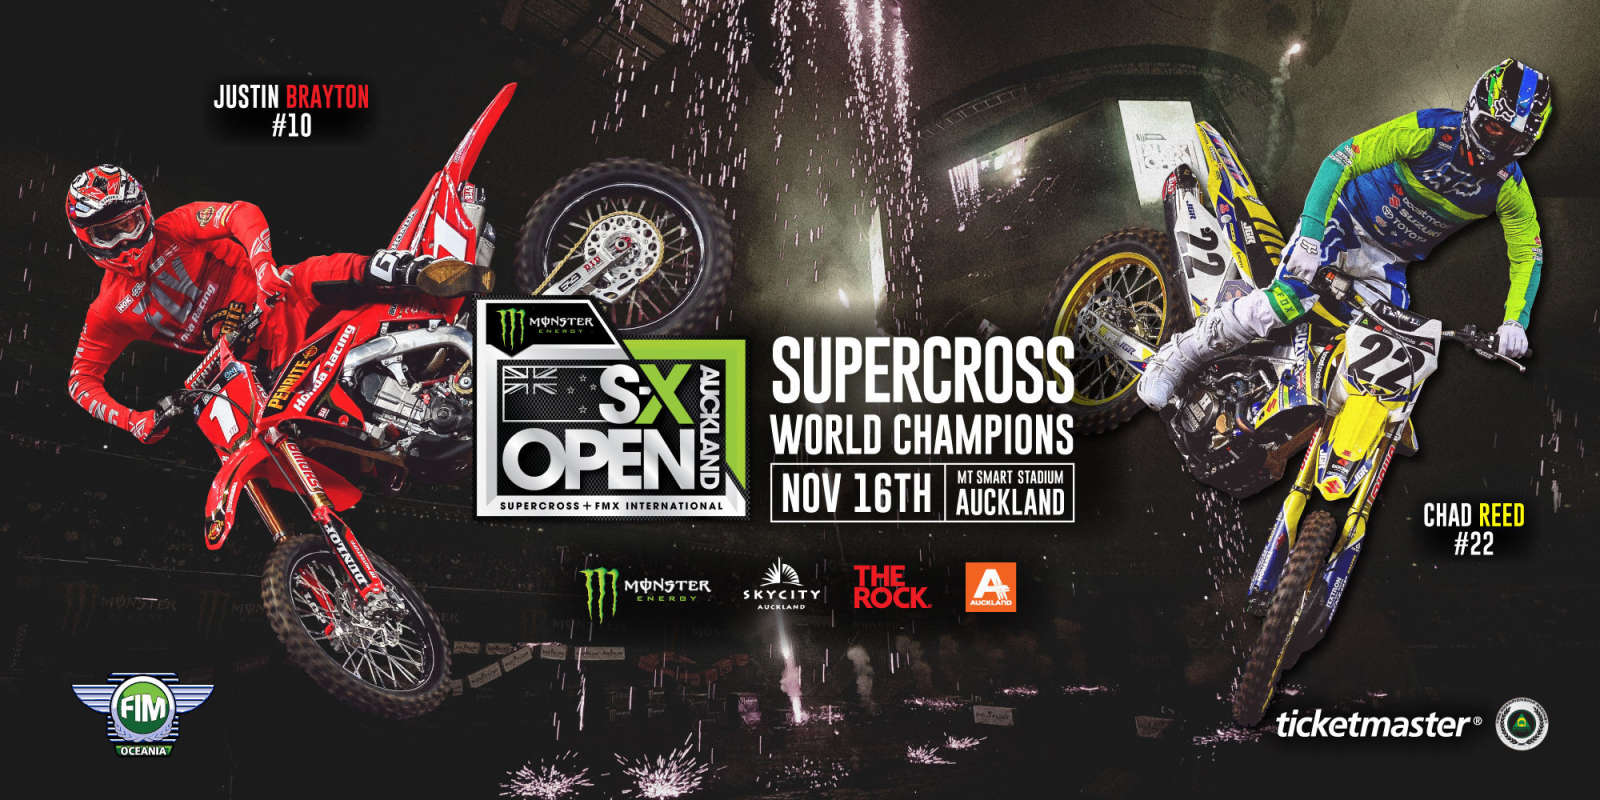 Web Banners for SX Open New Zealand event